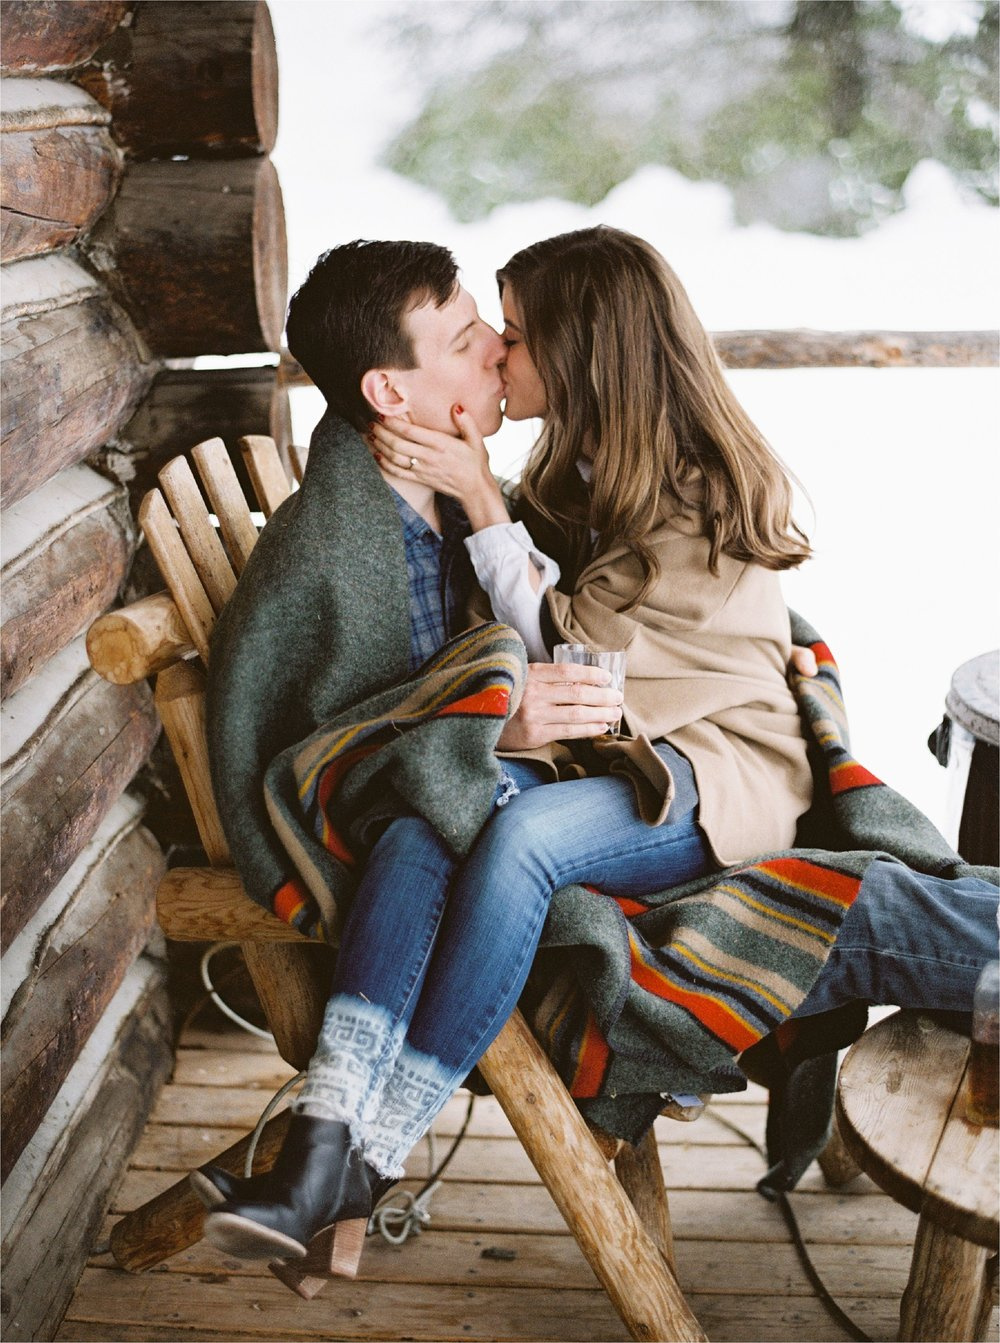 montana_film_wedding_engagement_photography_swanguardrangercabin_jeremiahandrachelphotography0155.JPG